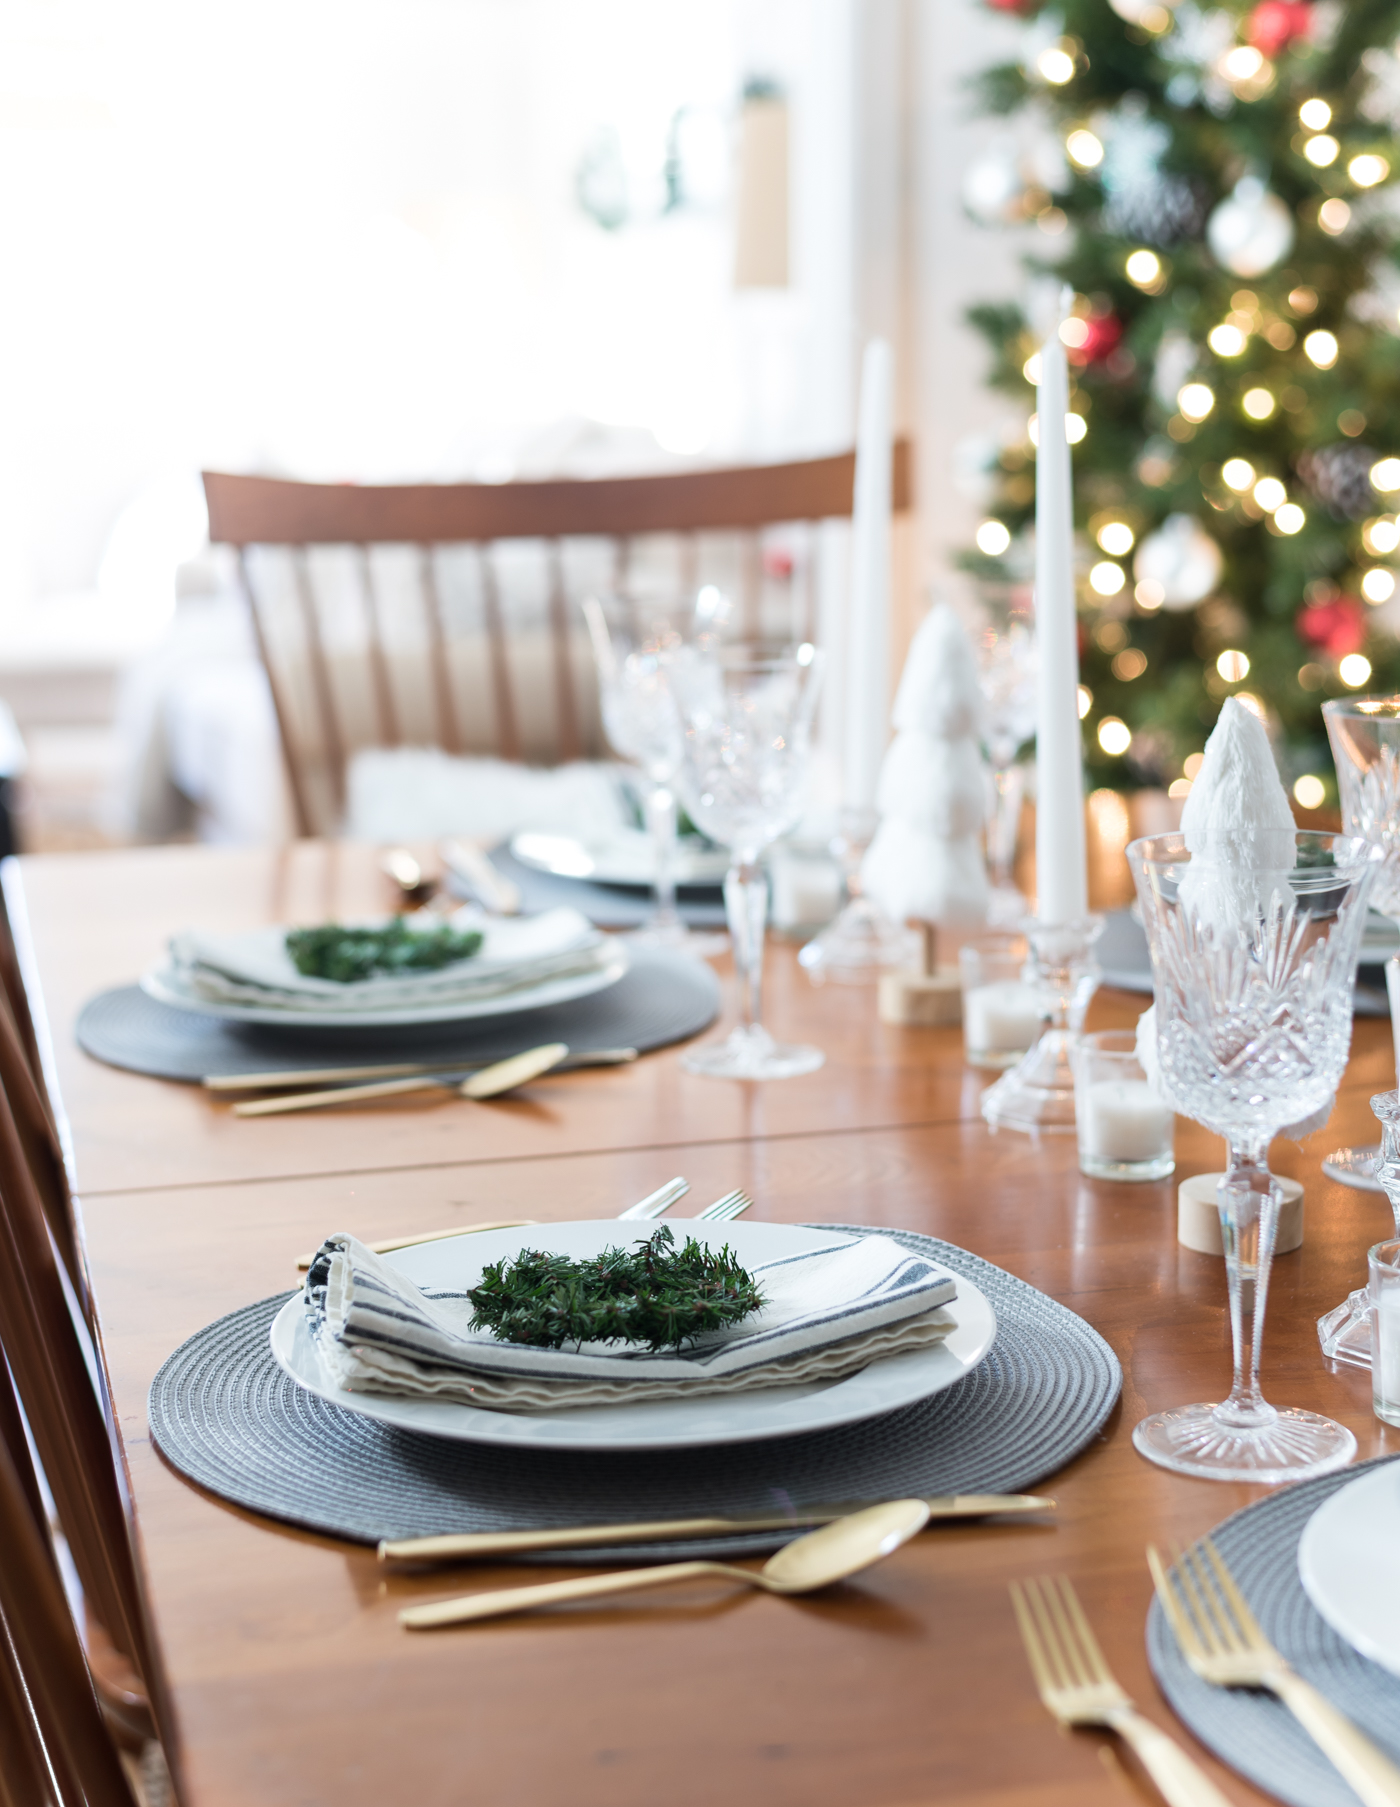 Holiday Table Setting in Gray, White